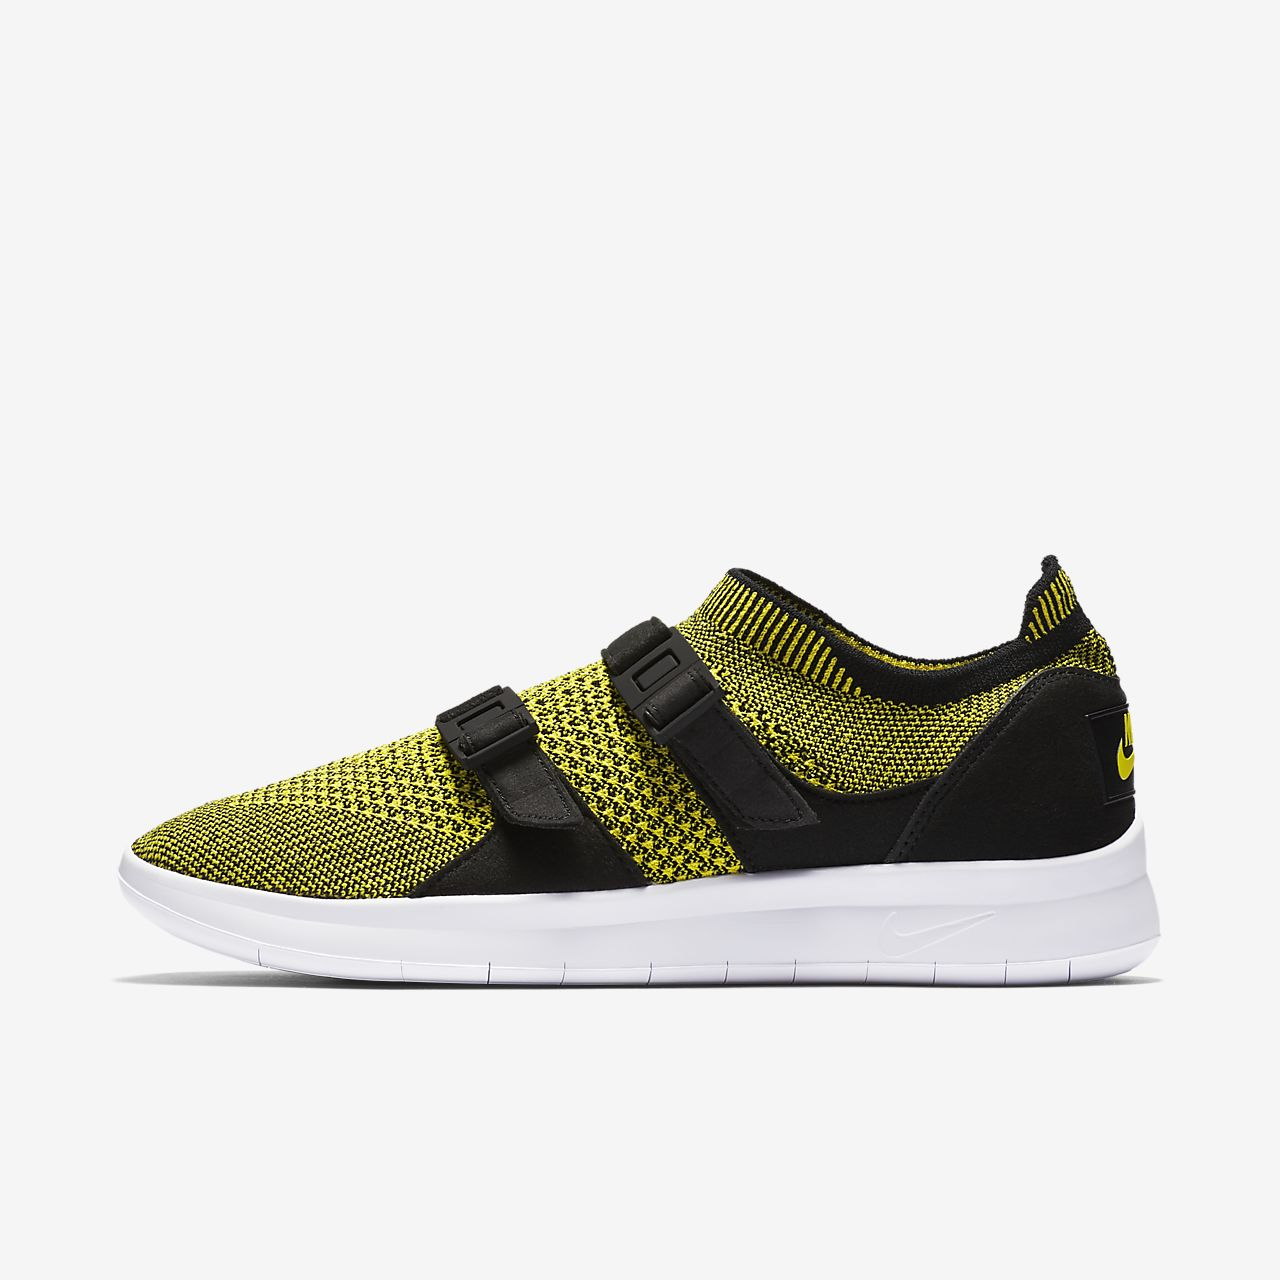 Women's Ch Ultra Shoe Flyknit Air Sock Racer Nike wWqnXFvZx